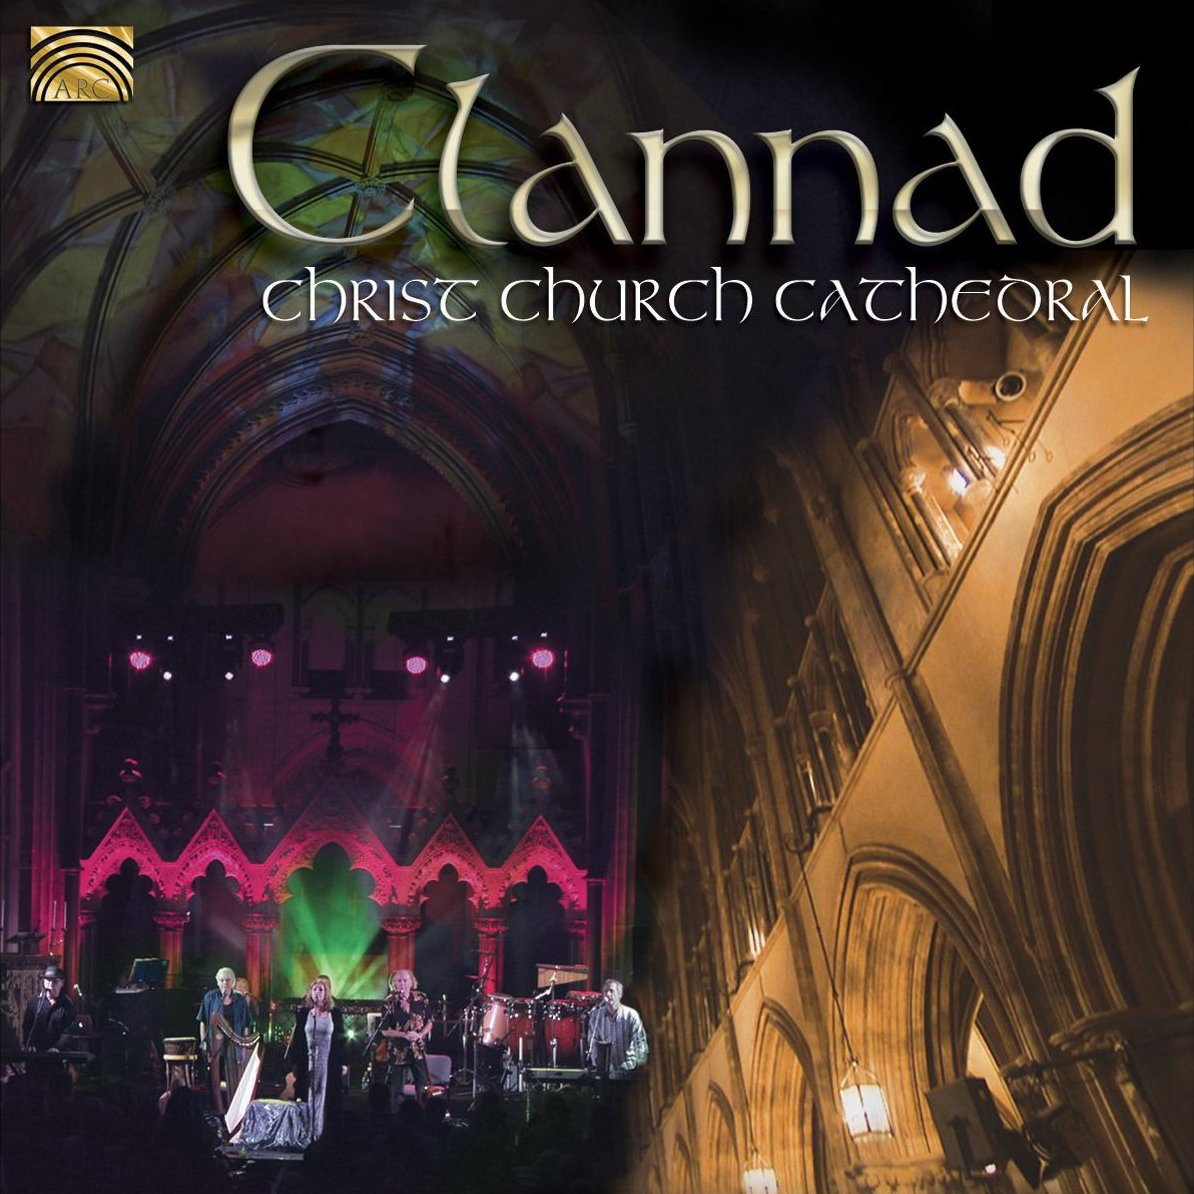 Clannad: Live at Christ Church Cathedral by ARC Music